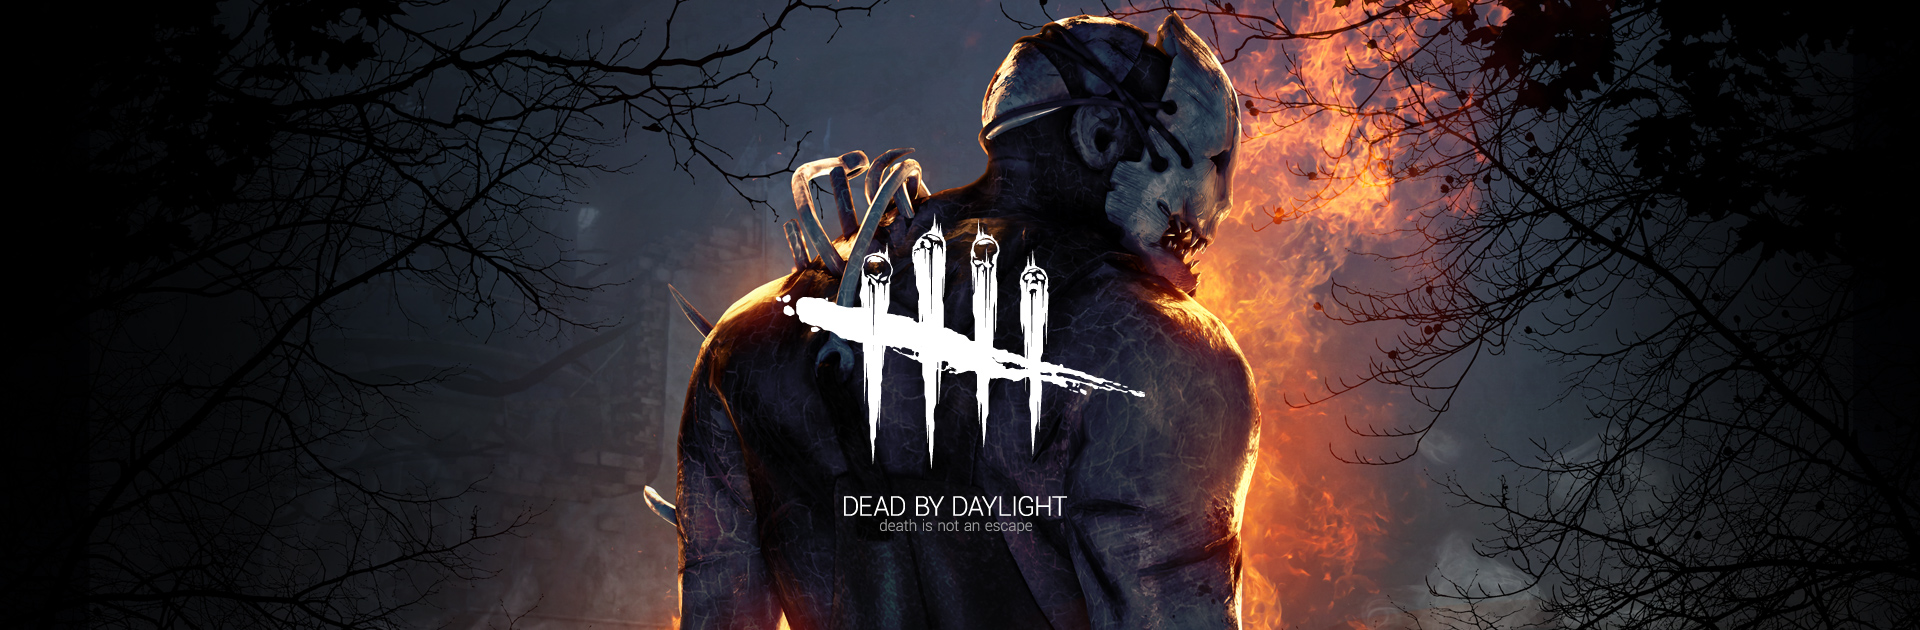 Survival Horror Game Dead by Daylight Coming to PS4 & Xbox One